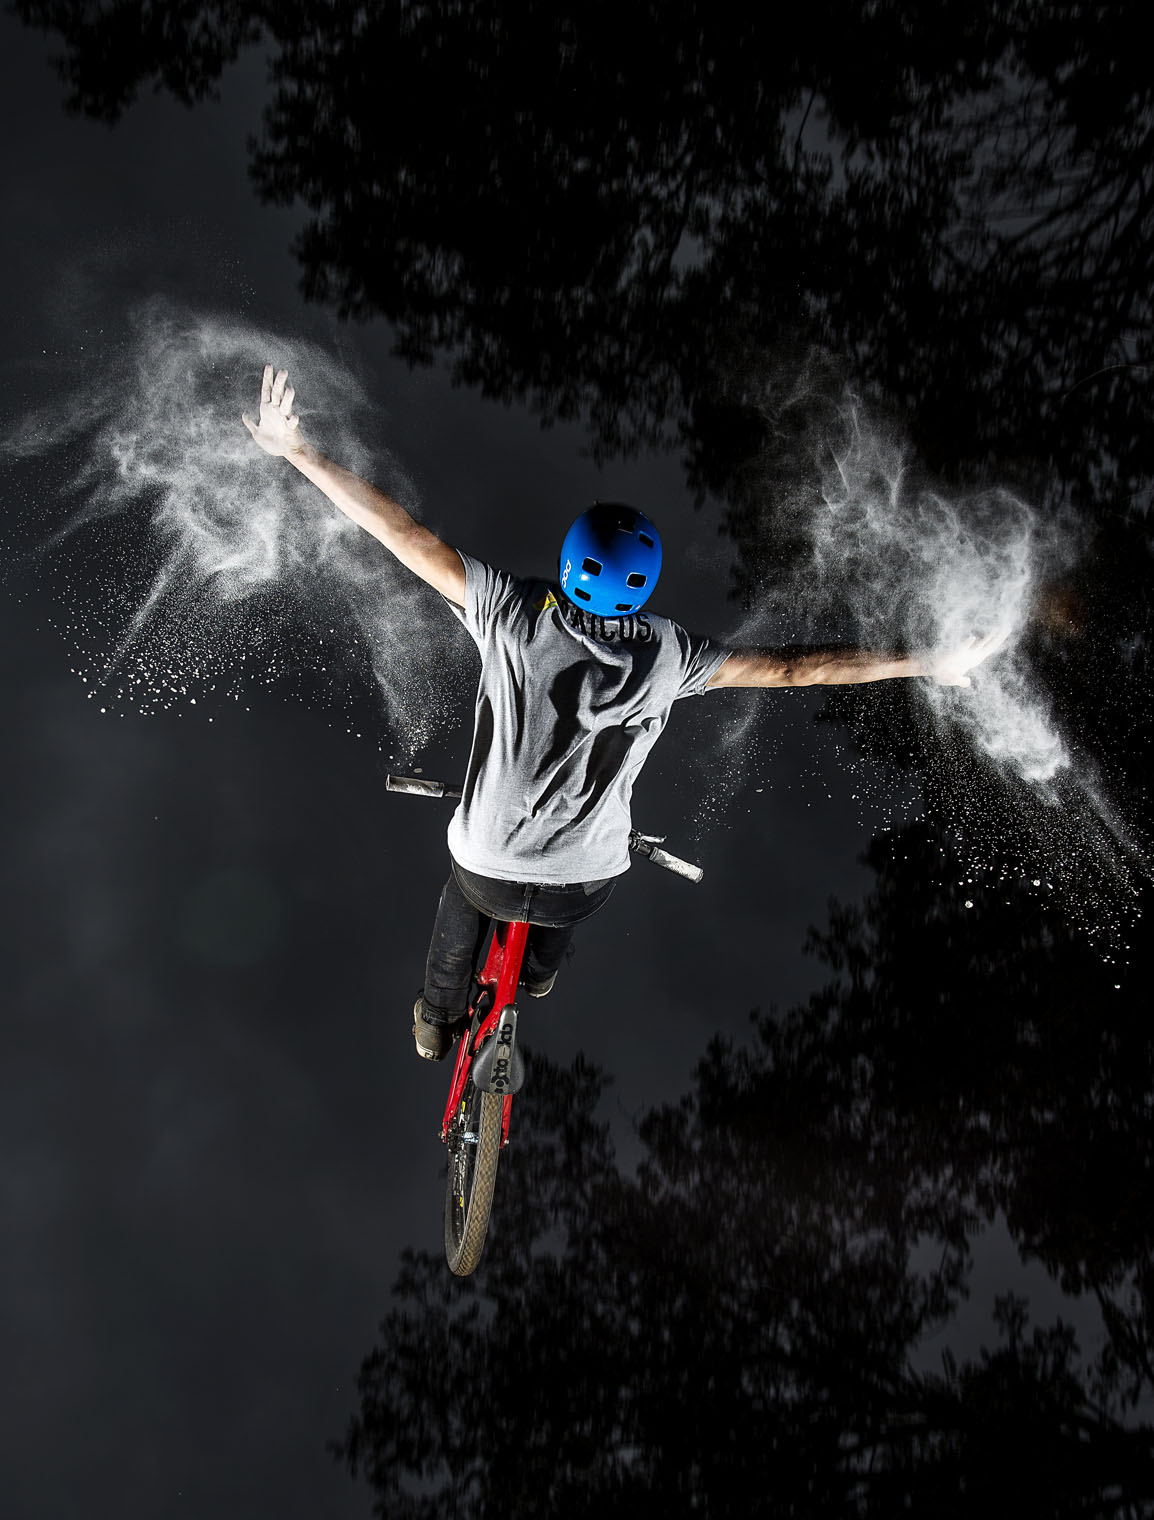 eric_walenta_backflip_tuck_nohander_flour_spray_flash